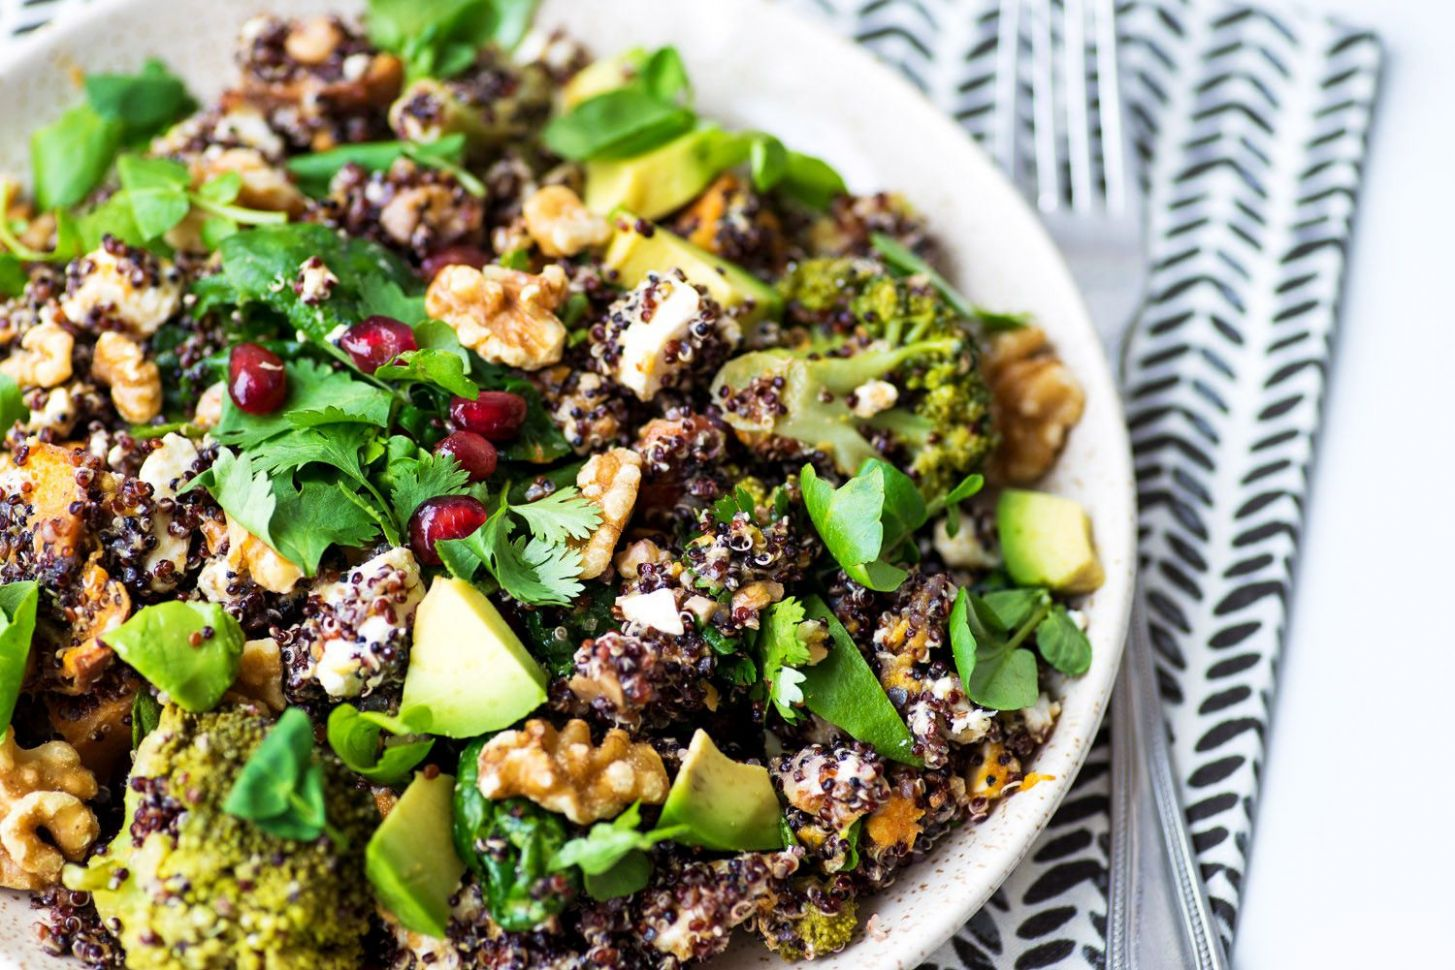 Jamie Oliver's Superfood Salad | Superfood salad, Superfood ...